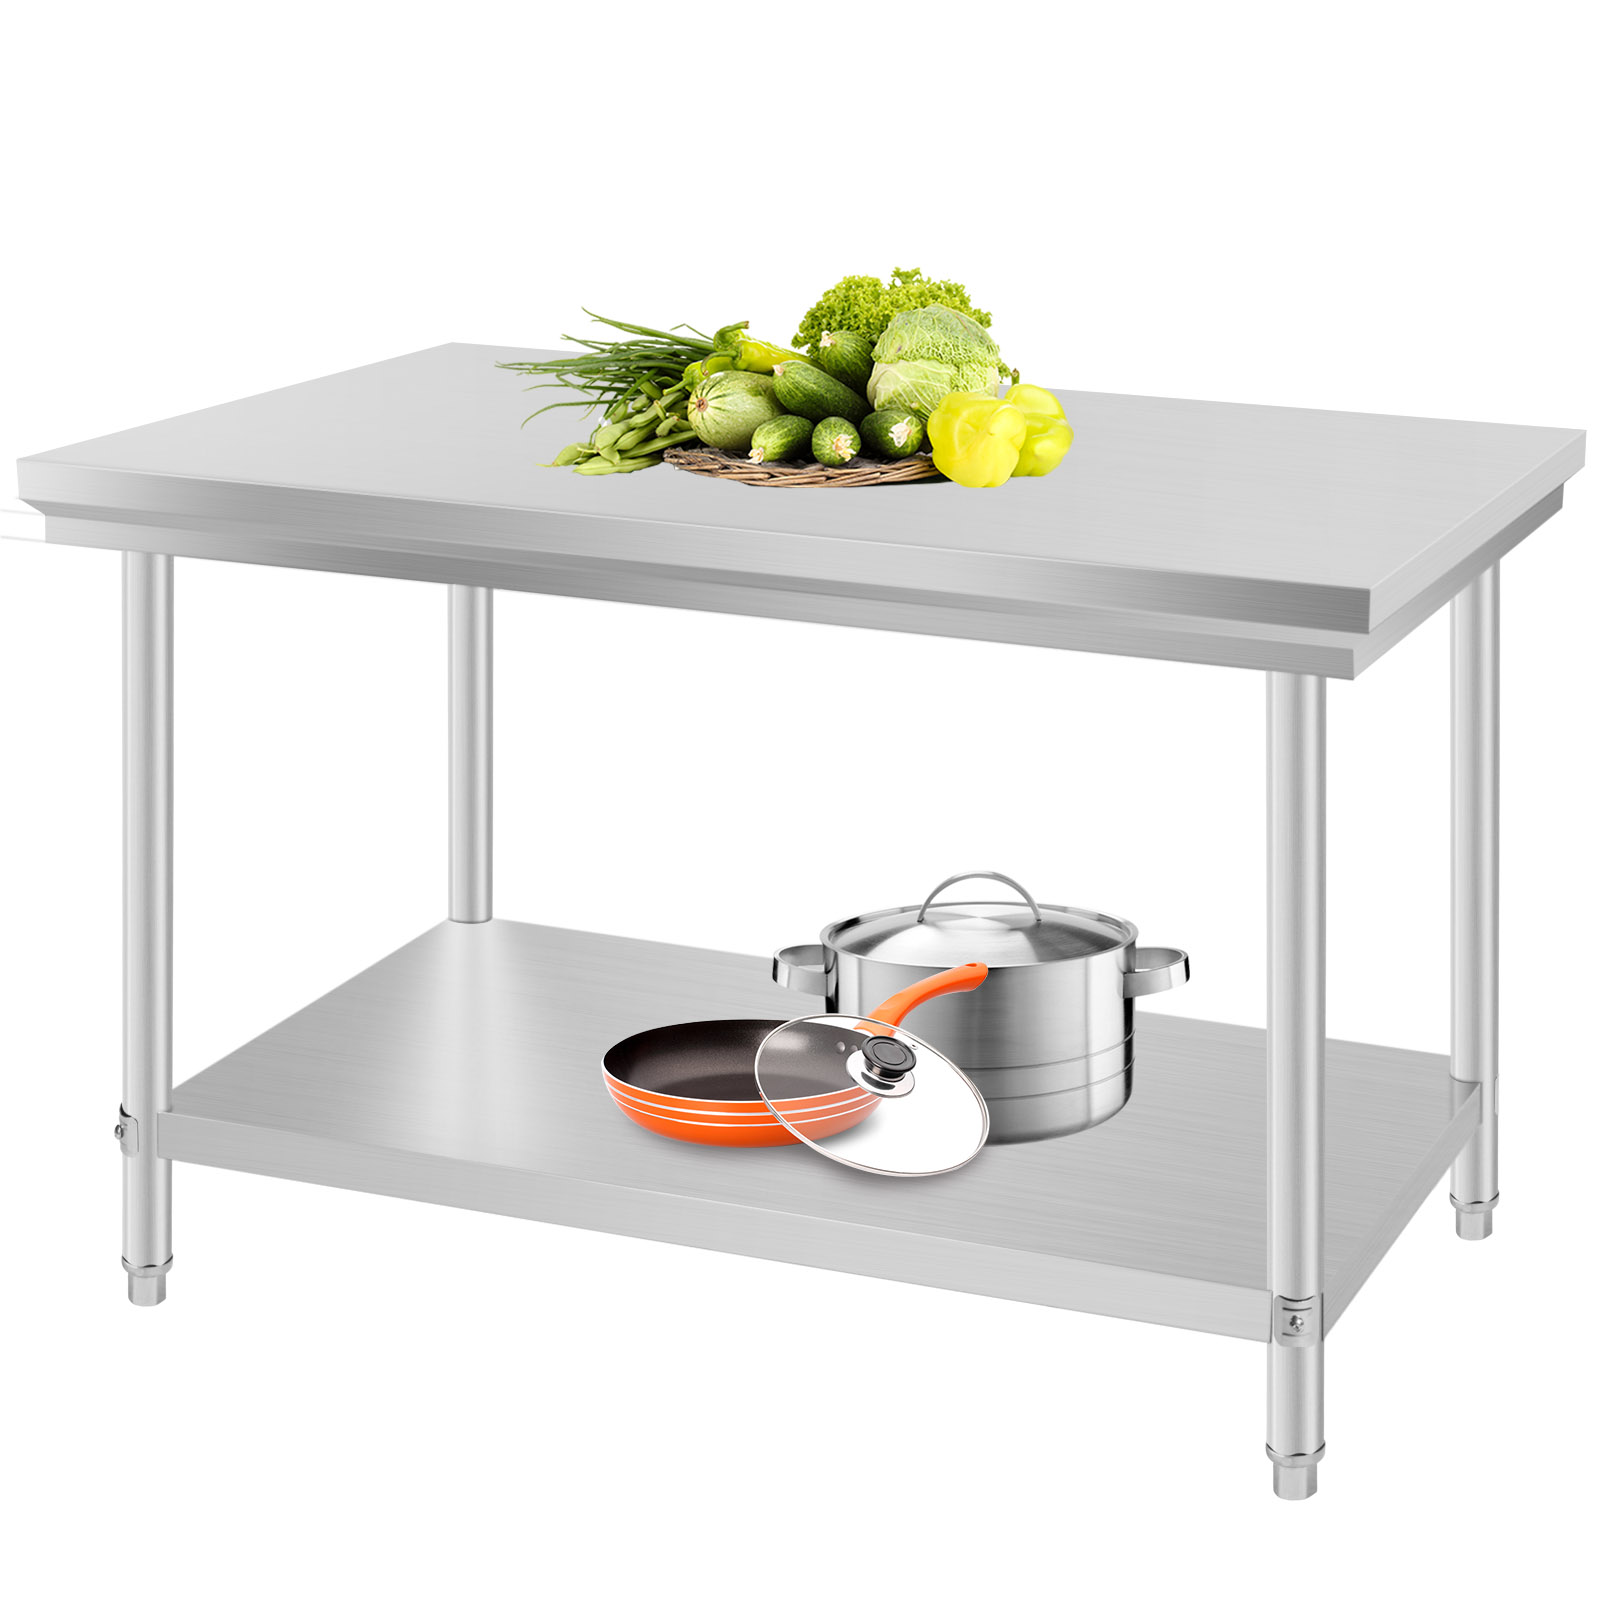 "24"" x 48"" Stainless Steel Kitchen Work Prep Table Storage"